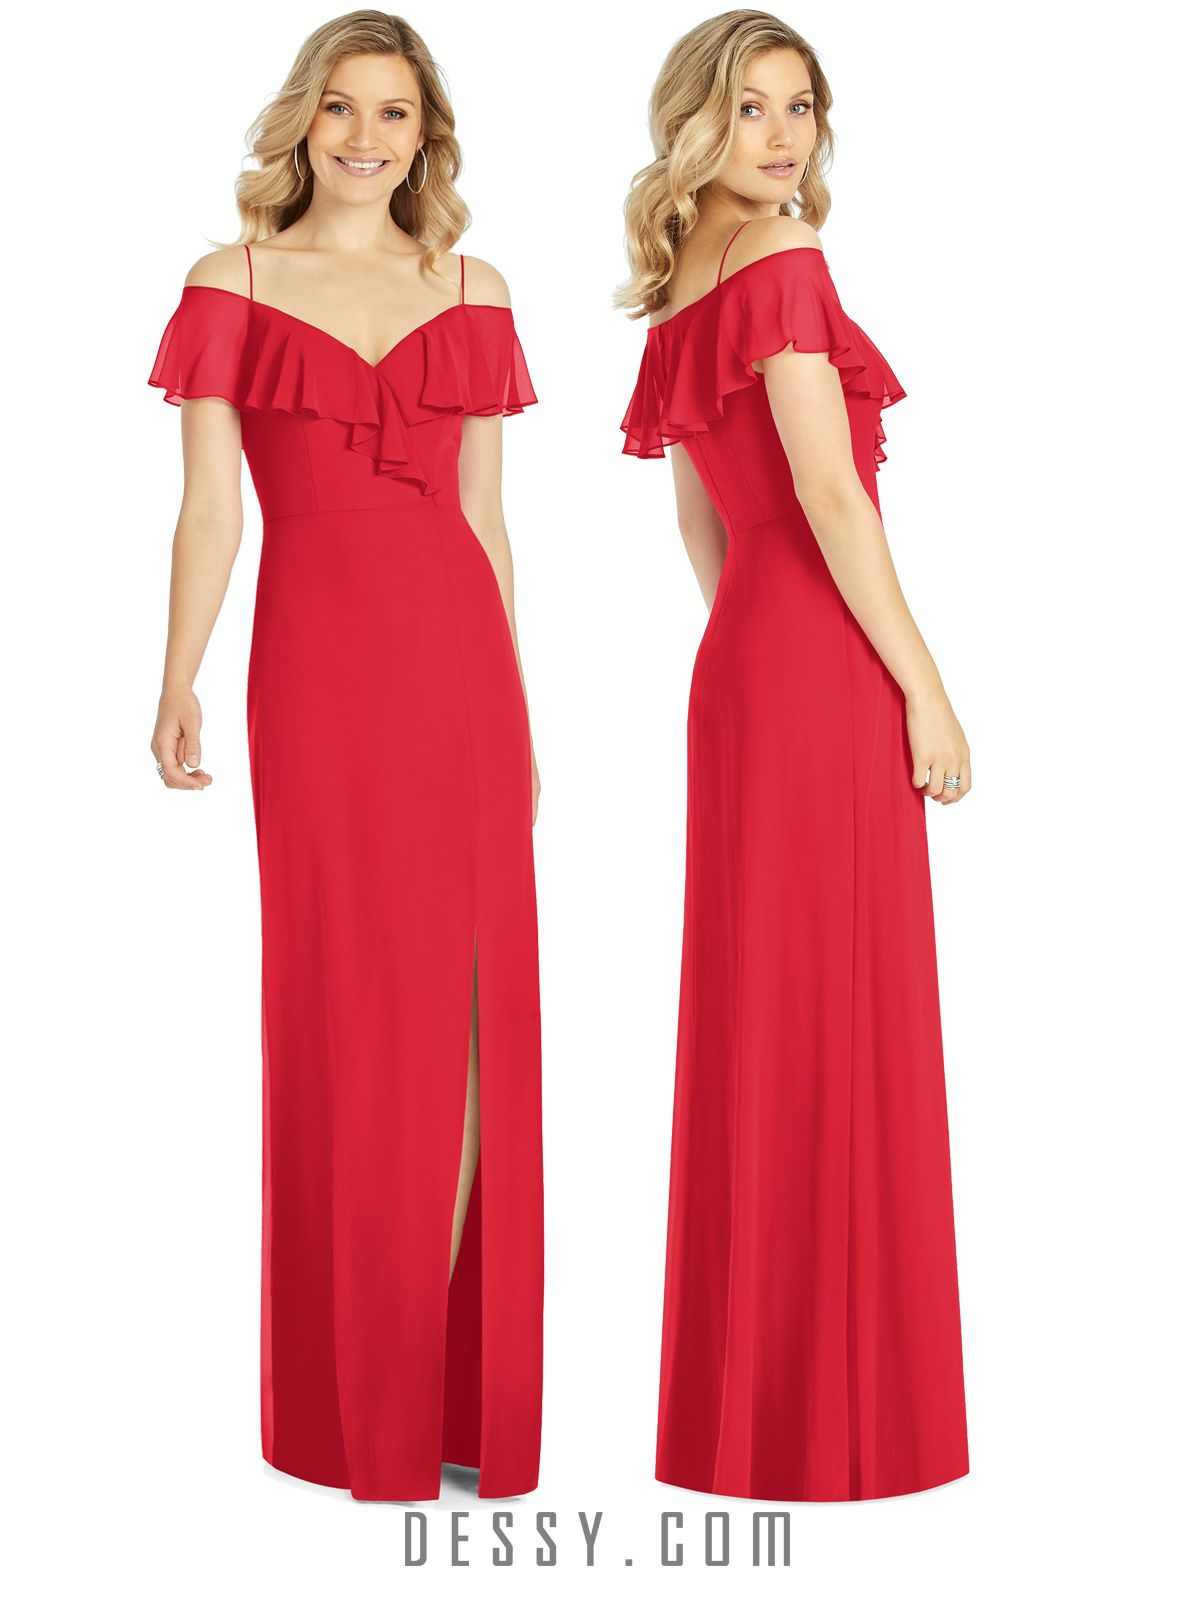 73e1cb1fa10 NEW Spring 2019 styles are now available at Dessy.com. Shown here, style  6809 in Parisian Red